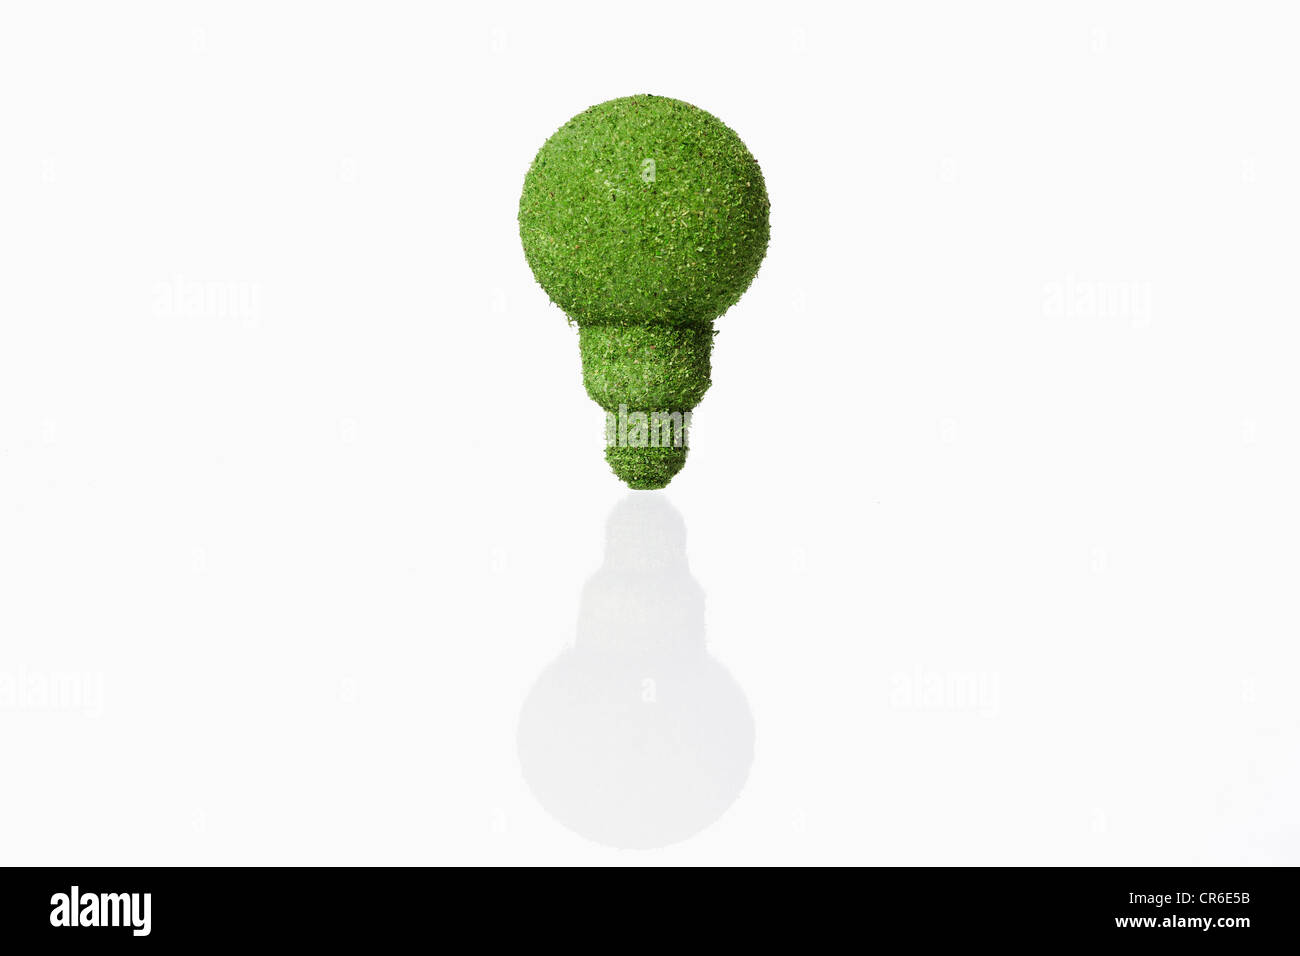 Lightbulb covered with grass on white background - Stock Image